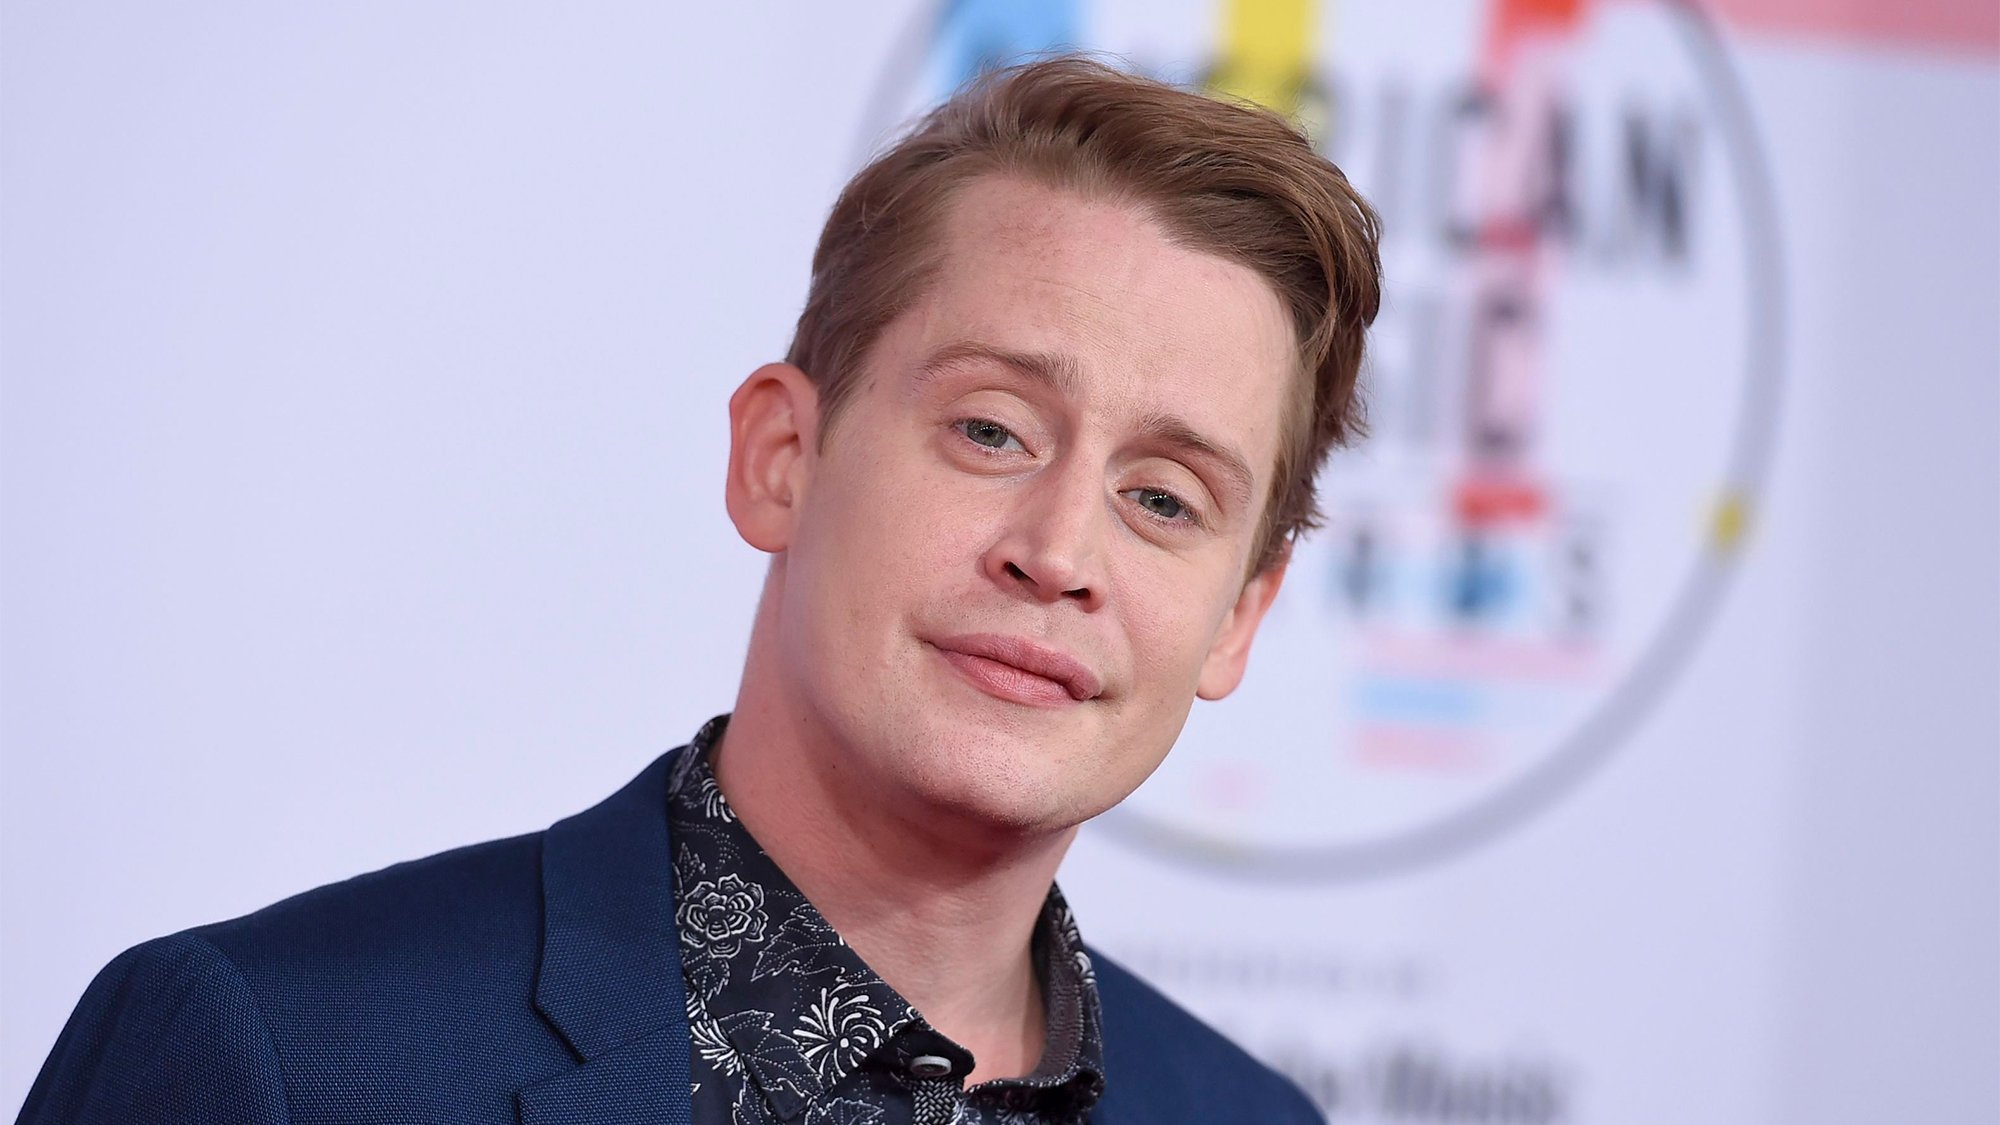 Ryan Murphy Posts First Pic Of Macaulay Culkin In Character Ahead Of 'American Horror Story' Season 10!